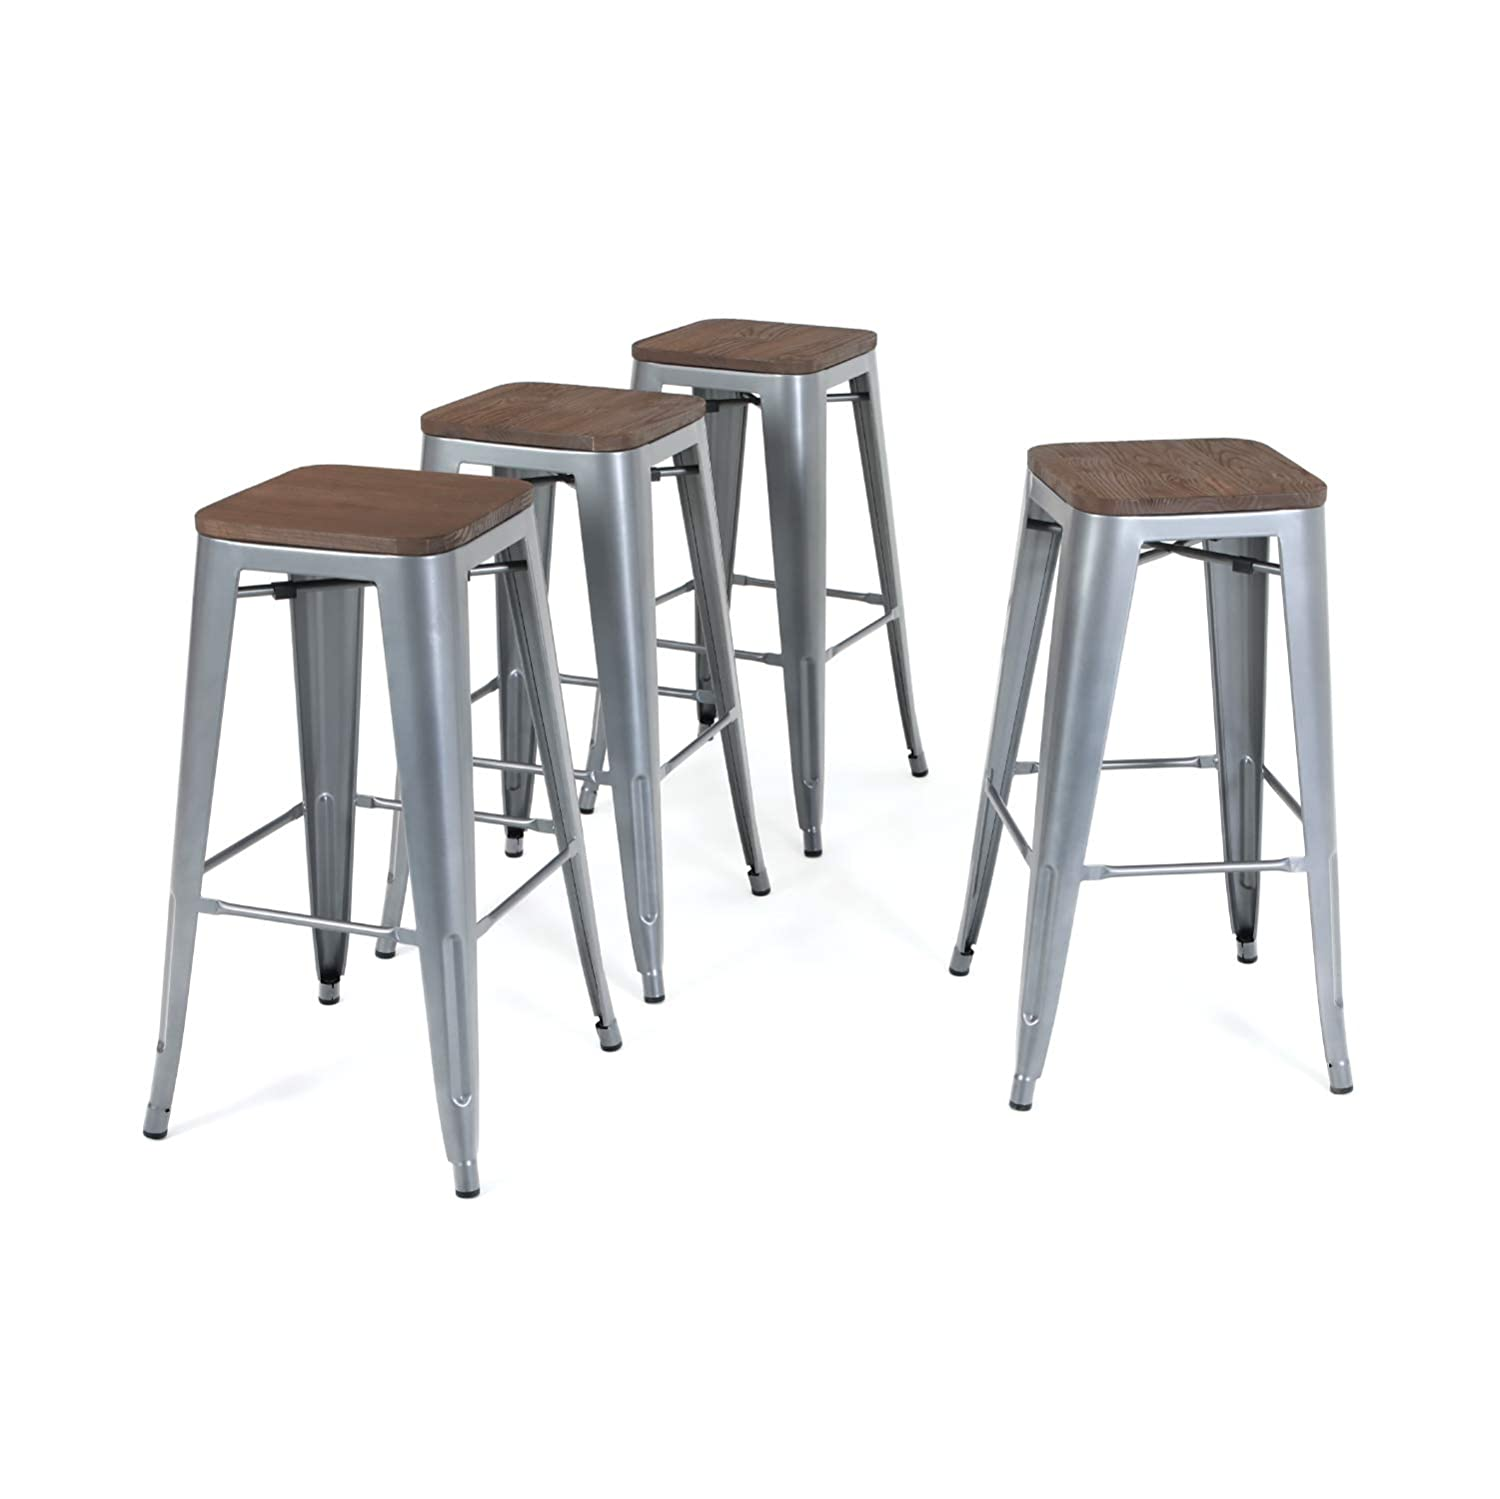 ALPHA HOME 30 Barstools Set of 4 Counter Height Metal Bar Stools with Wood Seat, Vintage Metal Backless Distressed Metal Finish for Industrial Appeal,Matte Silver Grey